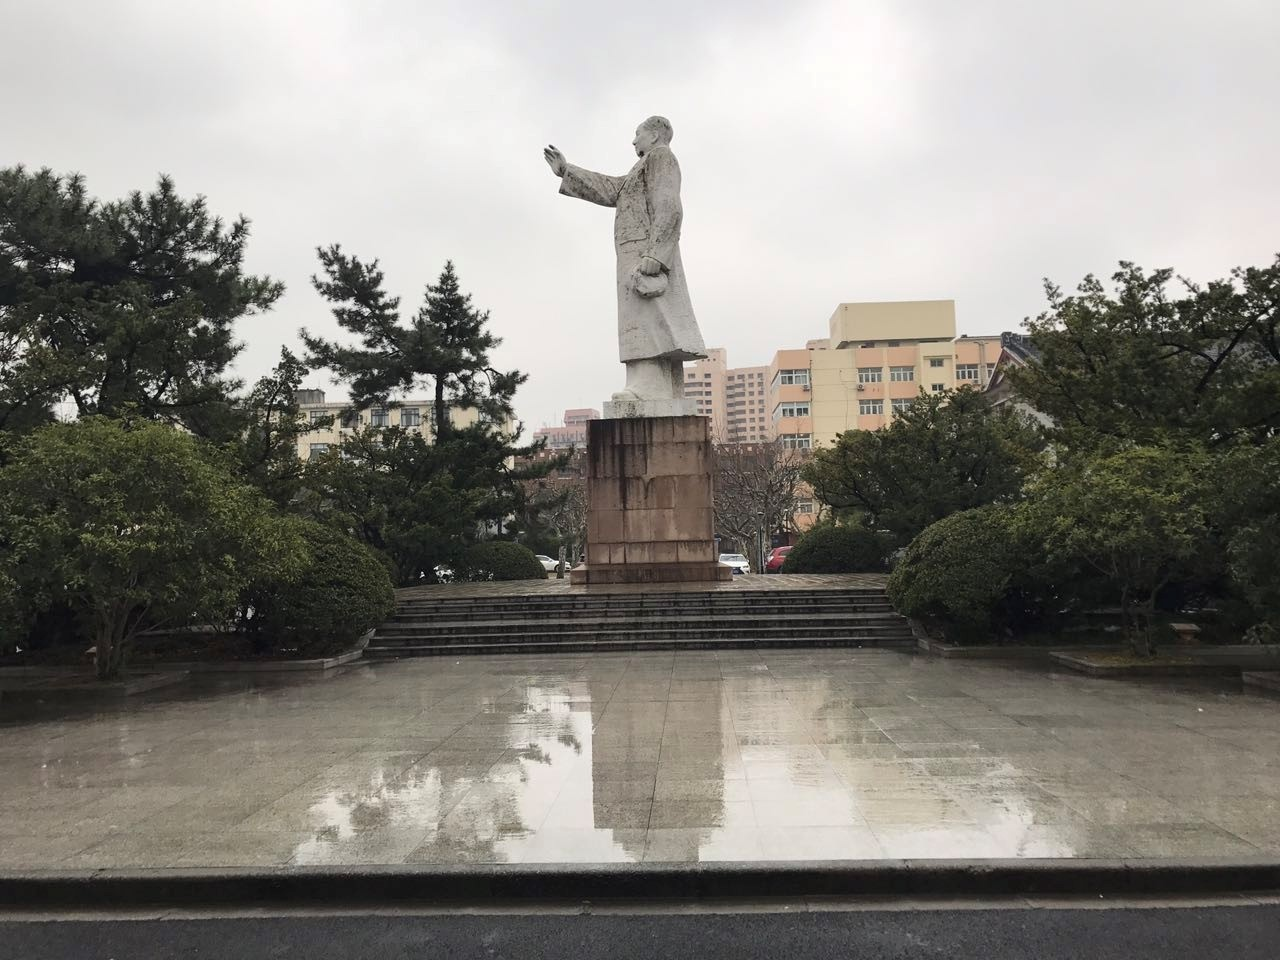 CAPAStudyAbroad_Shanghai_Spring2017_From Danielle Thai - Mao Statue in the front of an academic building.jpg